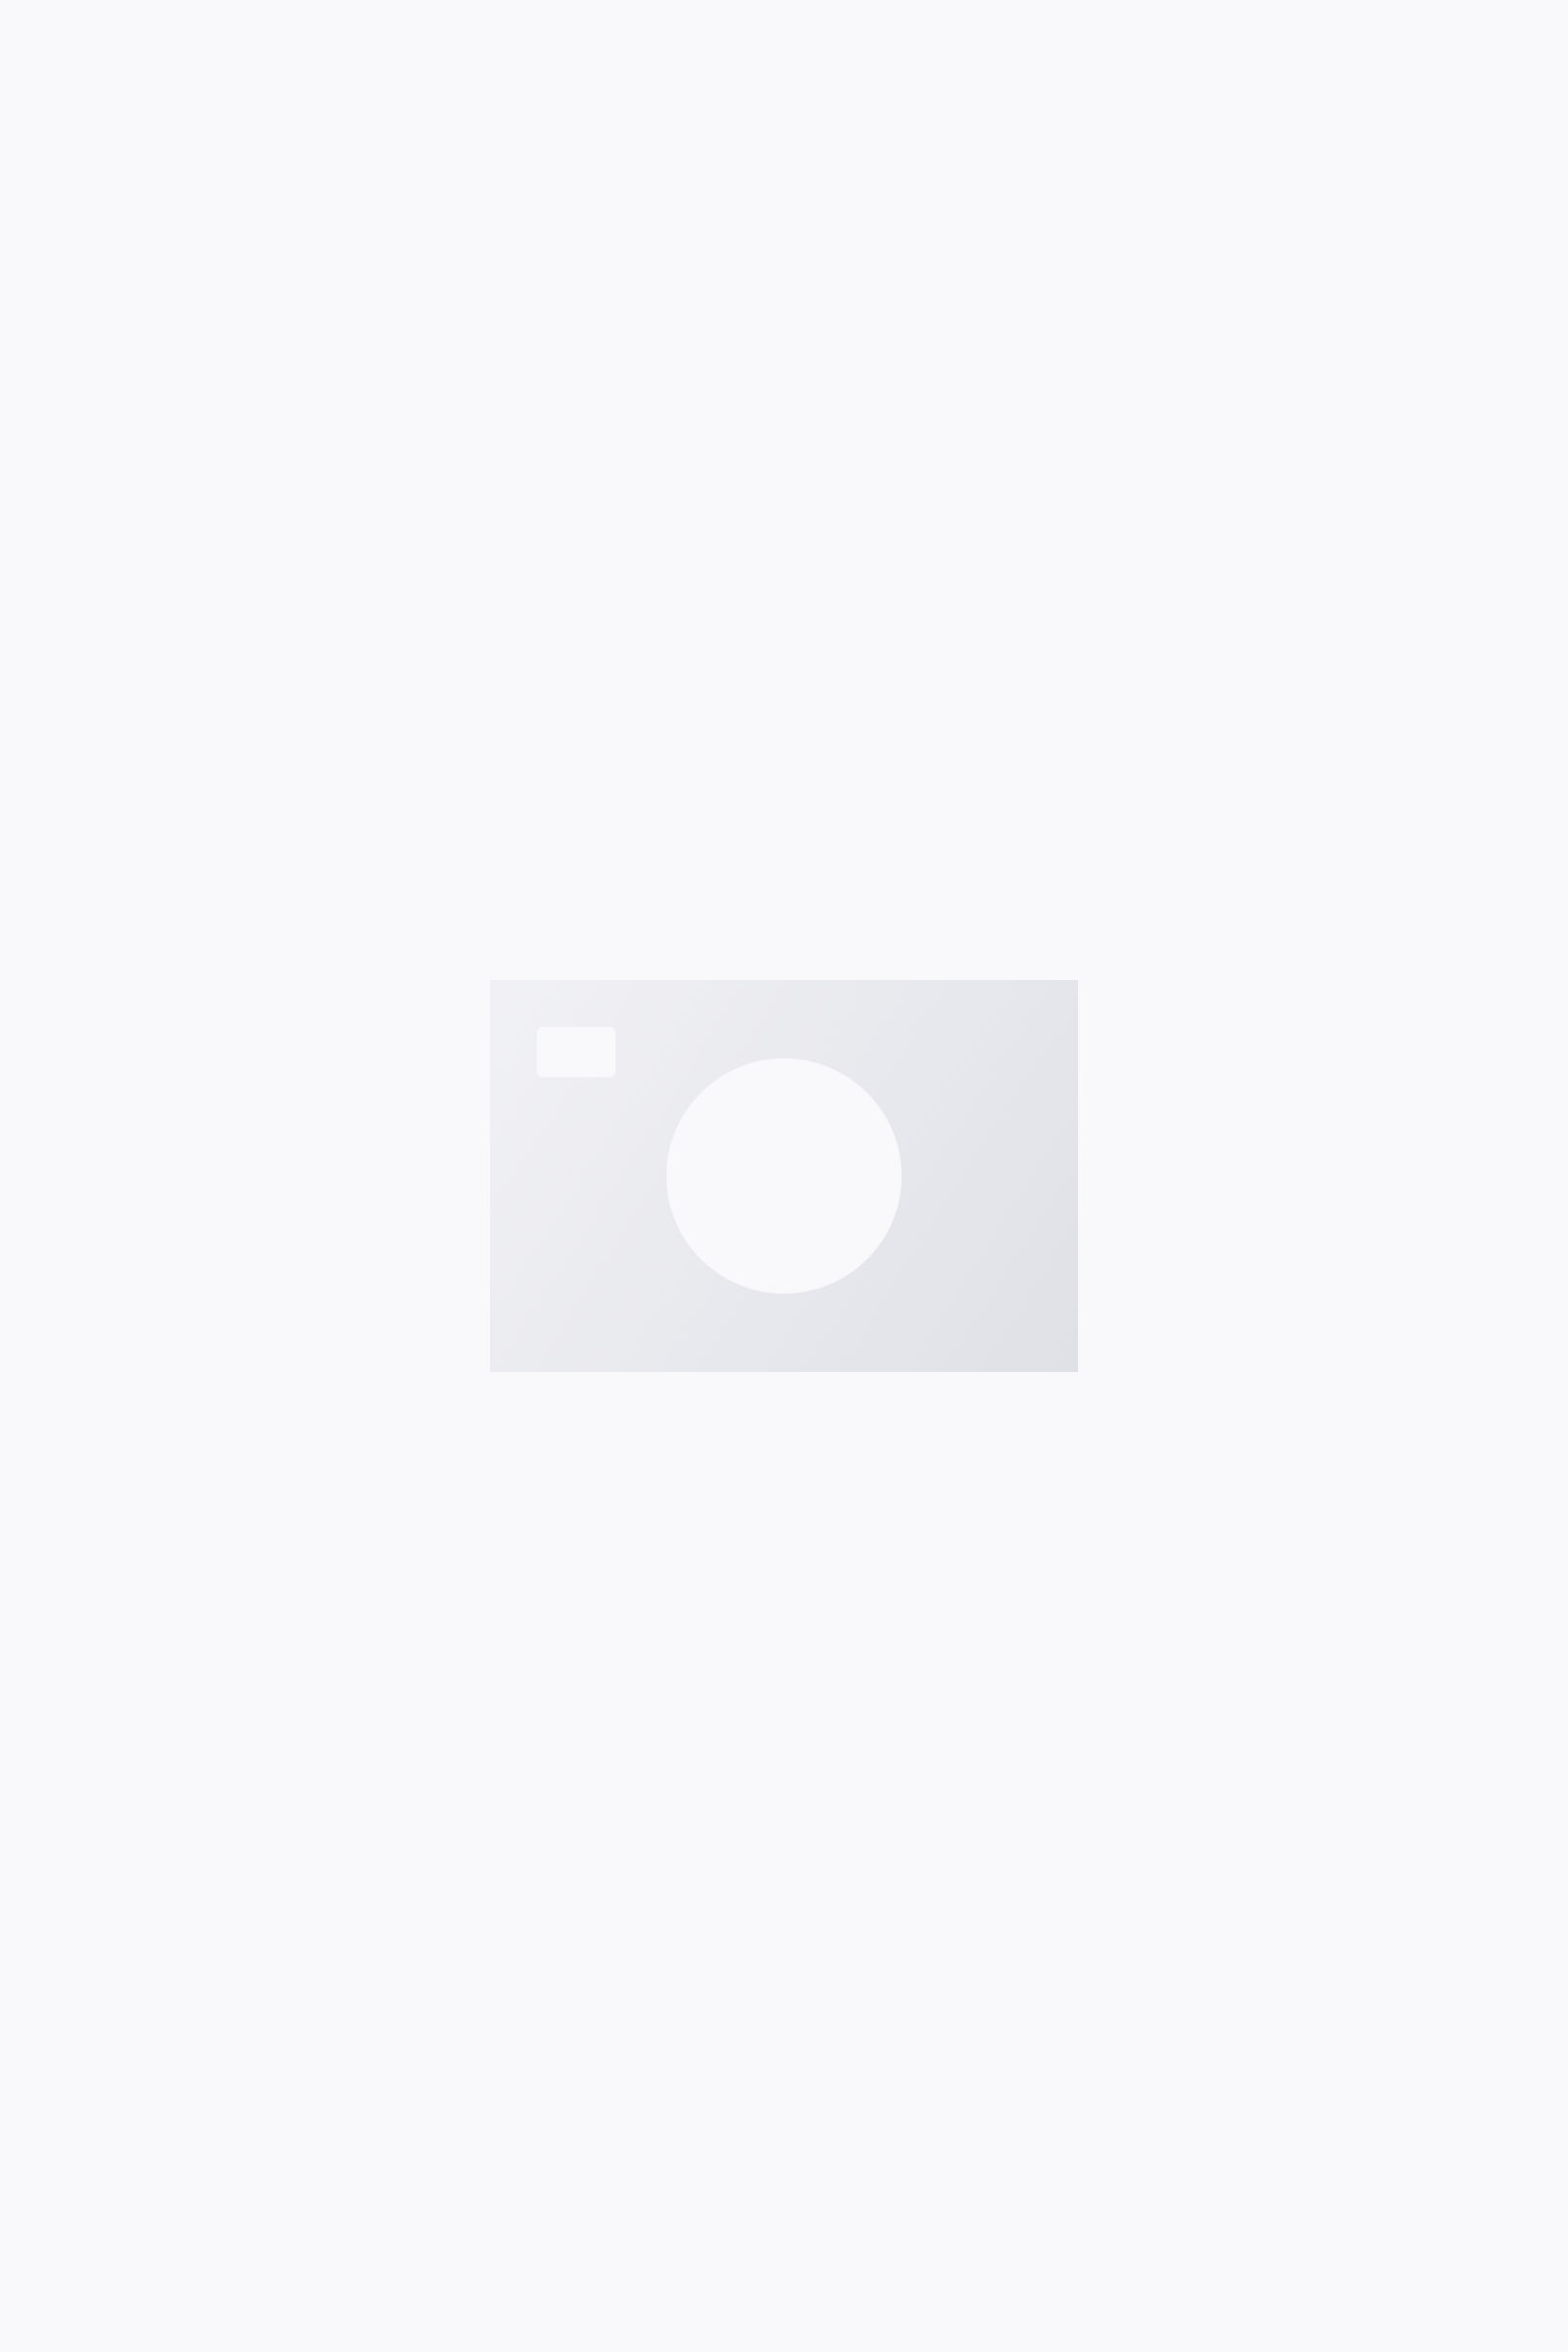 COS PULL-ON CUFFED TROUSERS,Dark grey